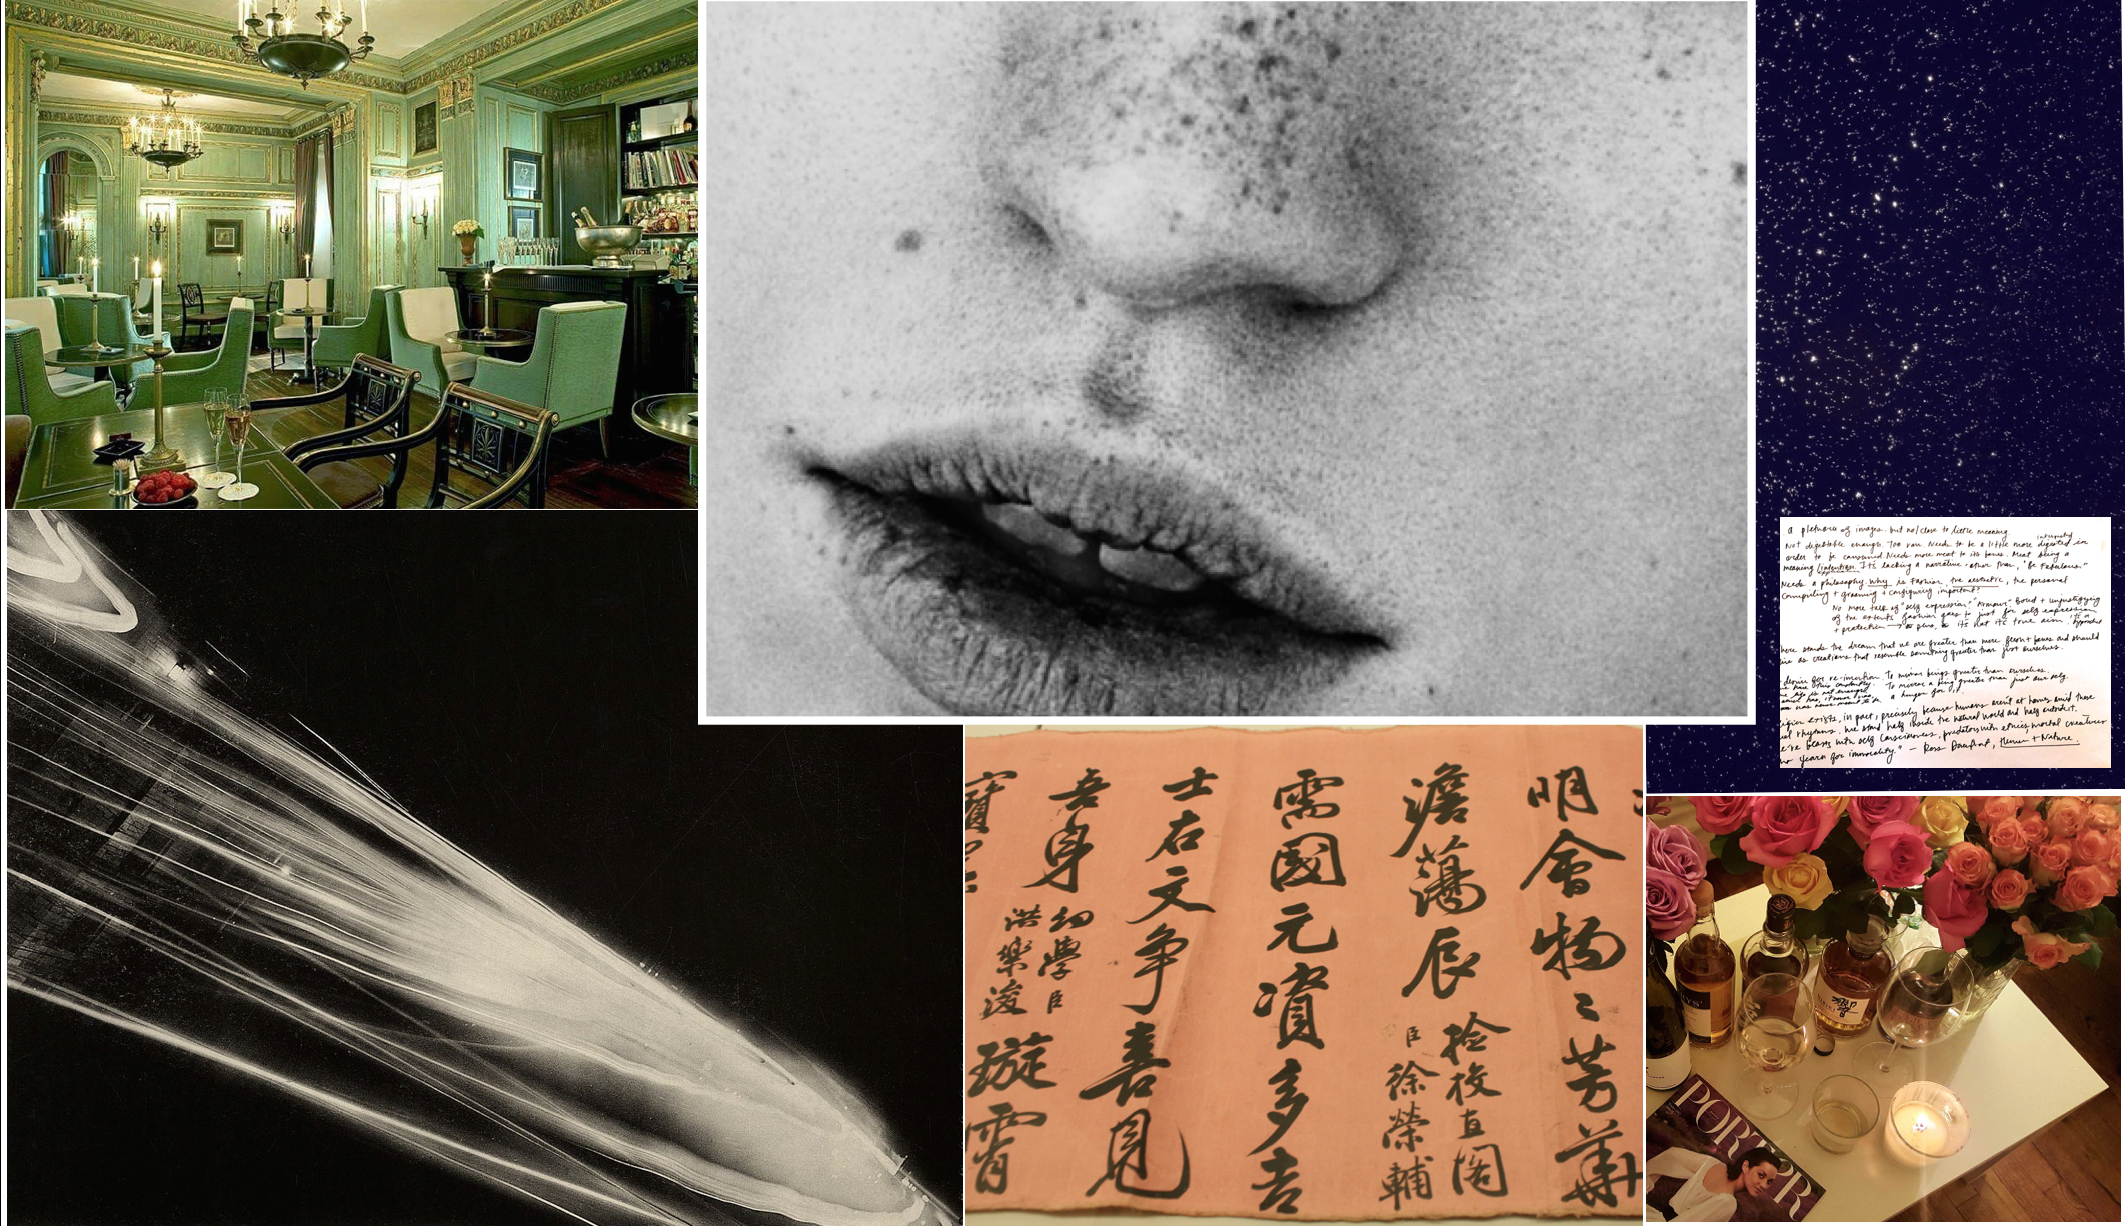 From left - clockwise: my favorite dream bar in Paris at Le Dokhan; a fragment of a photo shot by Billy Kidd; excerpt of diary notes and a glipmse of stars; a snapshot of birthday drinks; photo of a visit to Seoul's Museum of History; photo by one of my favorites, photographer Kiyoshi Koishi